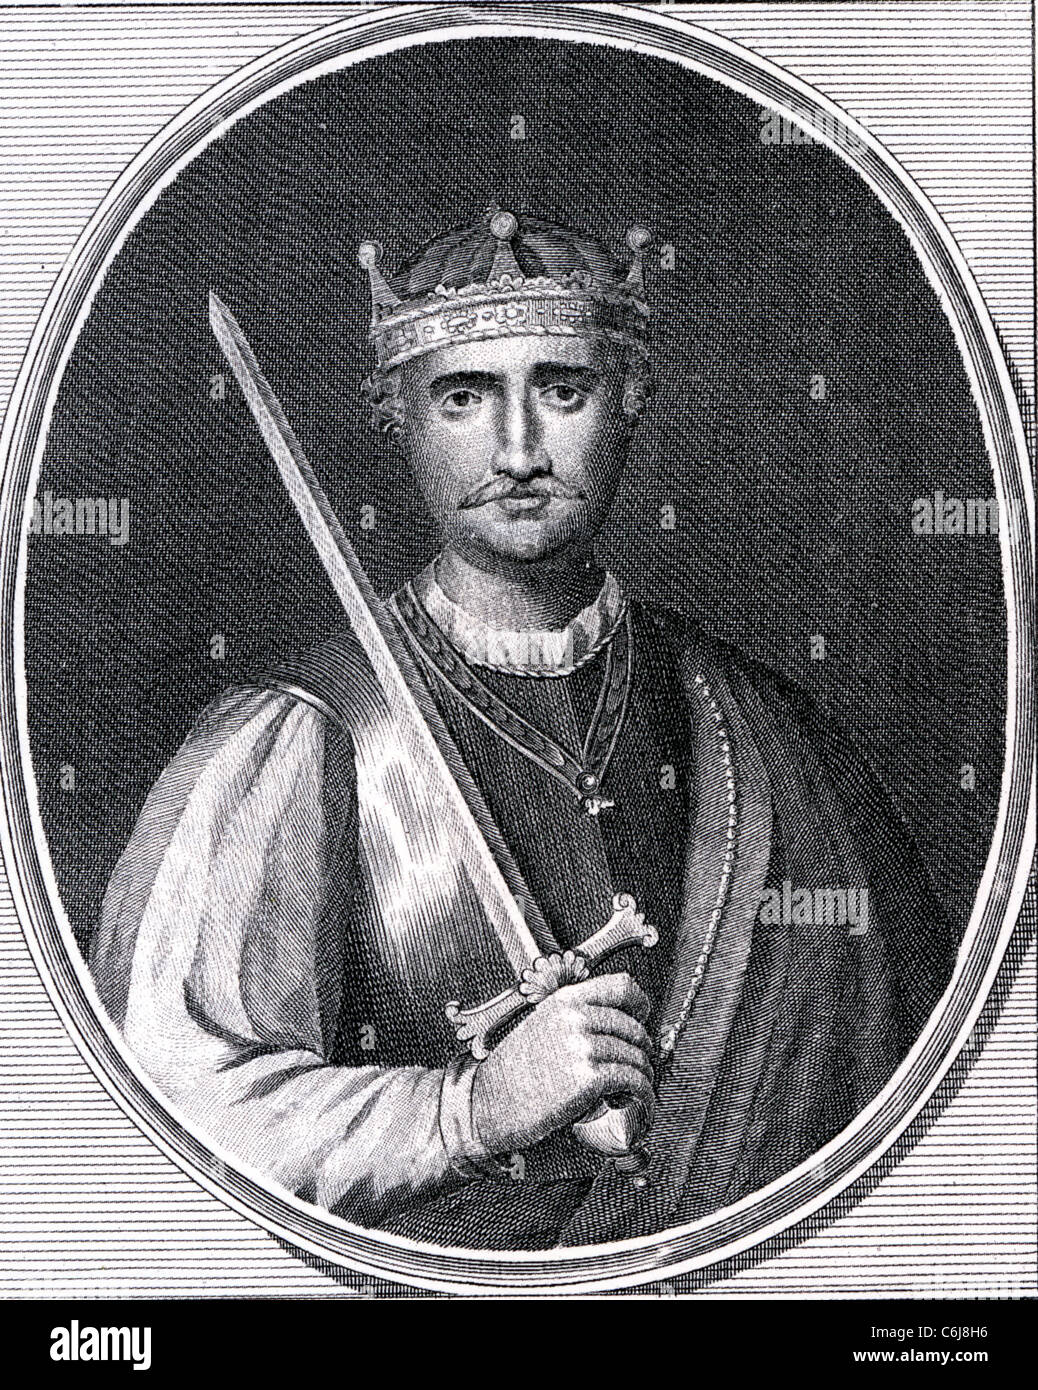 WILLIAM THE CONQUEROR (c 1028-1087) first Norman King of England - Stock Image